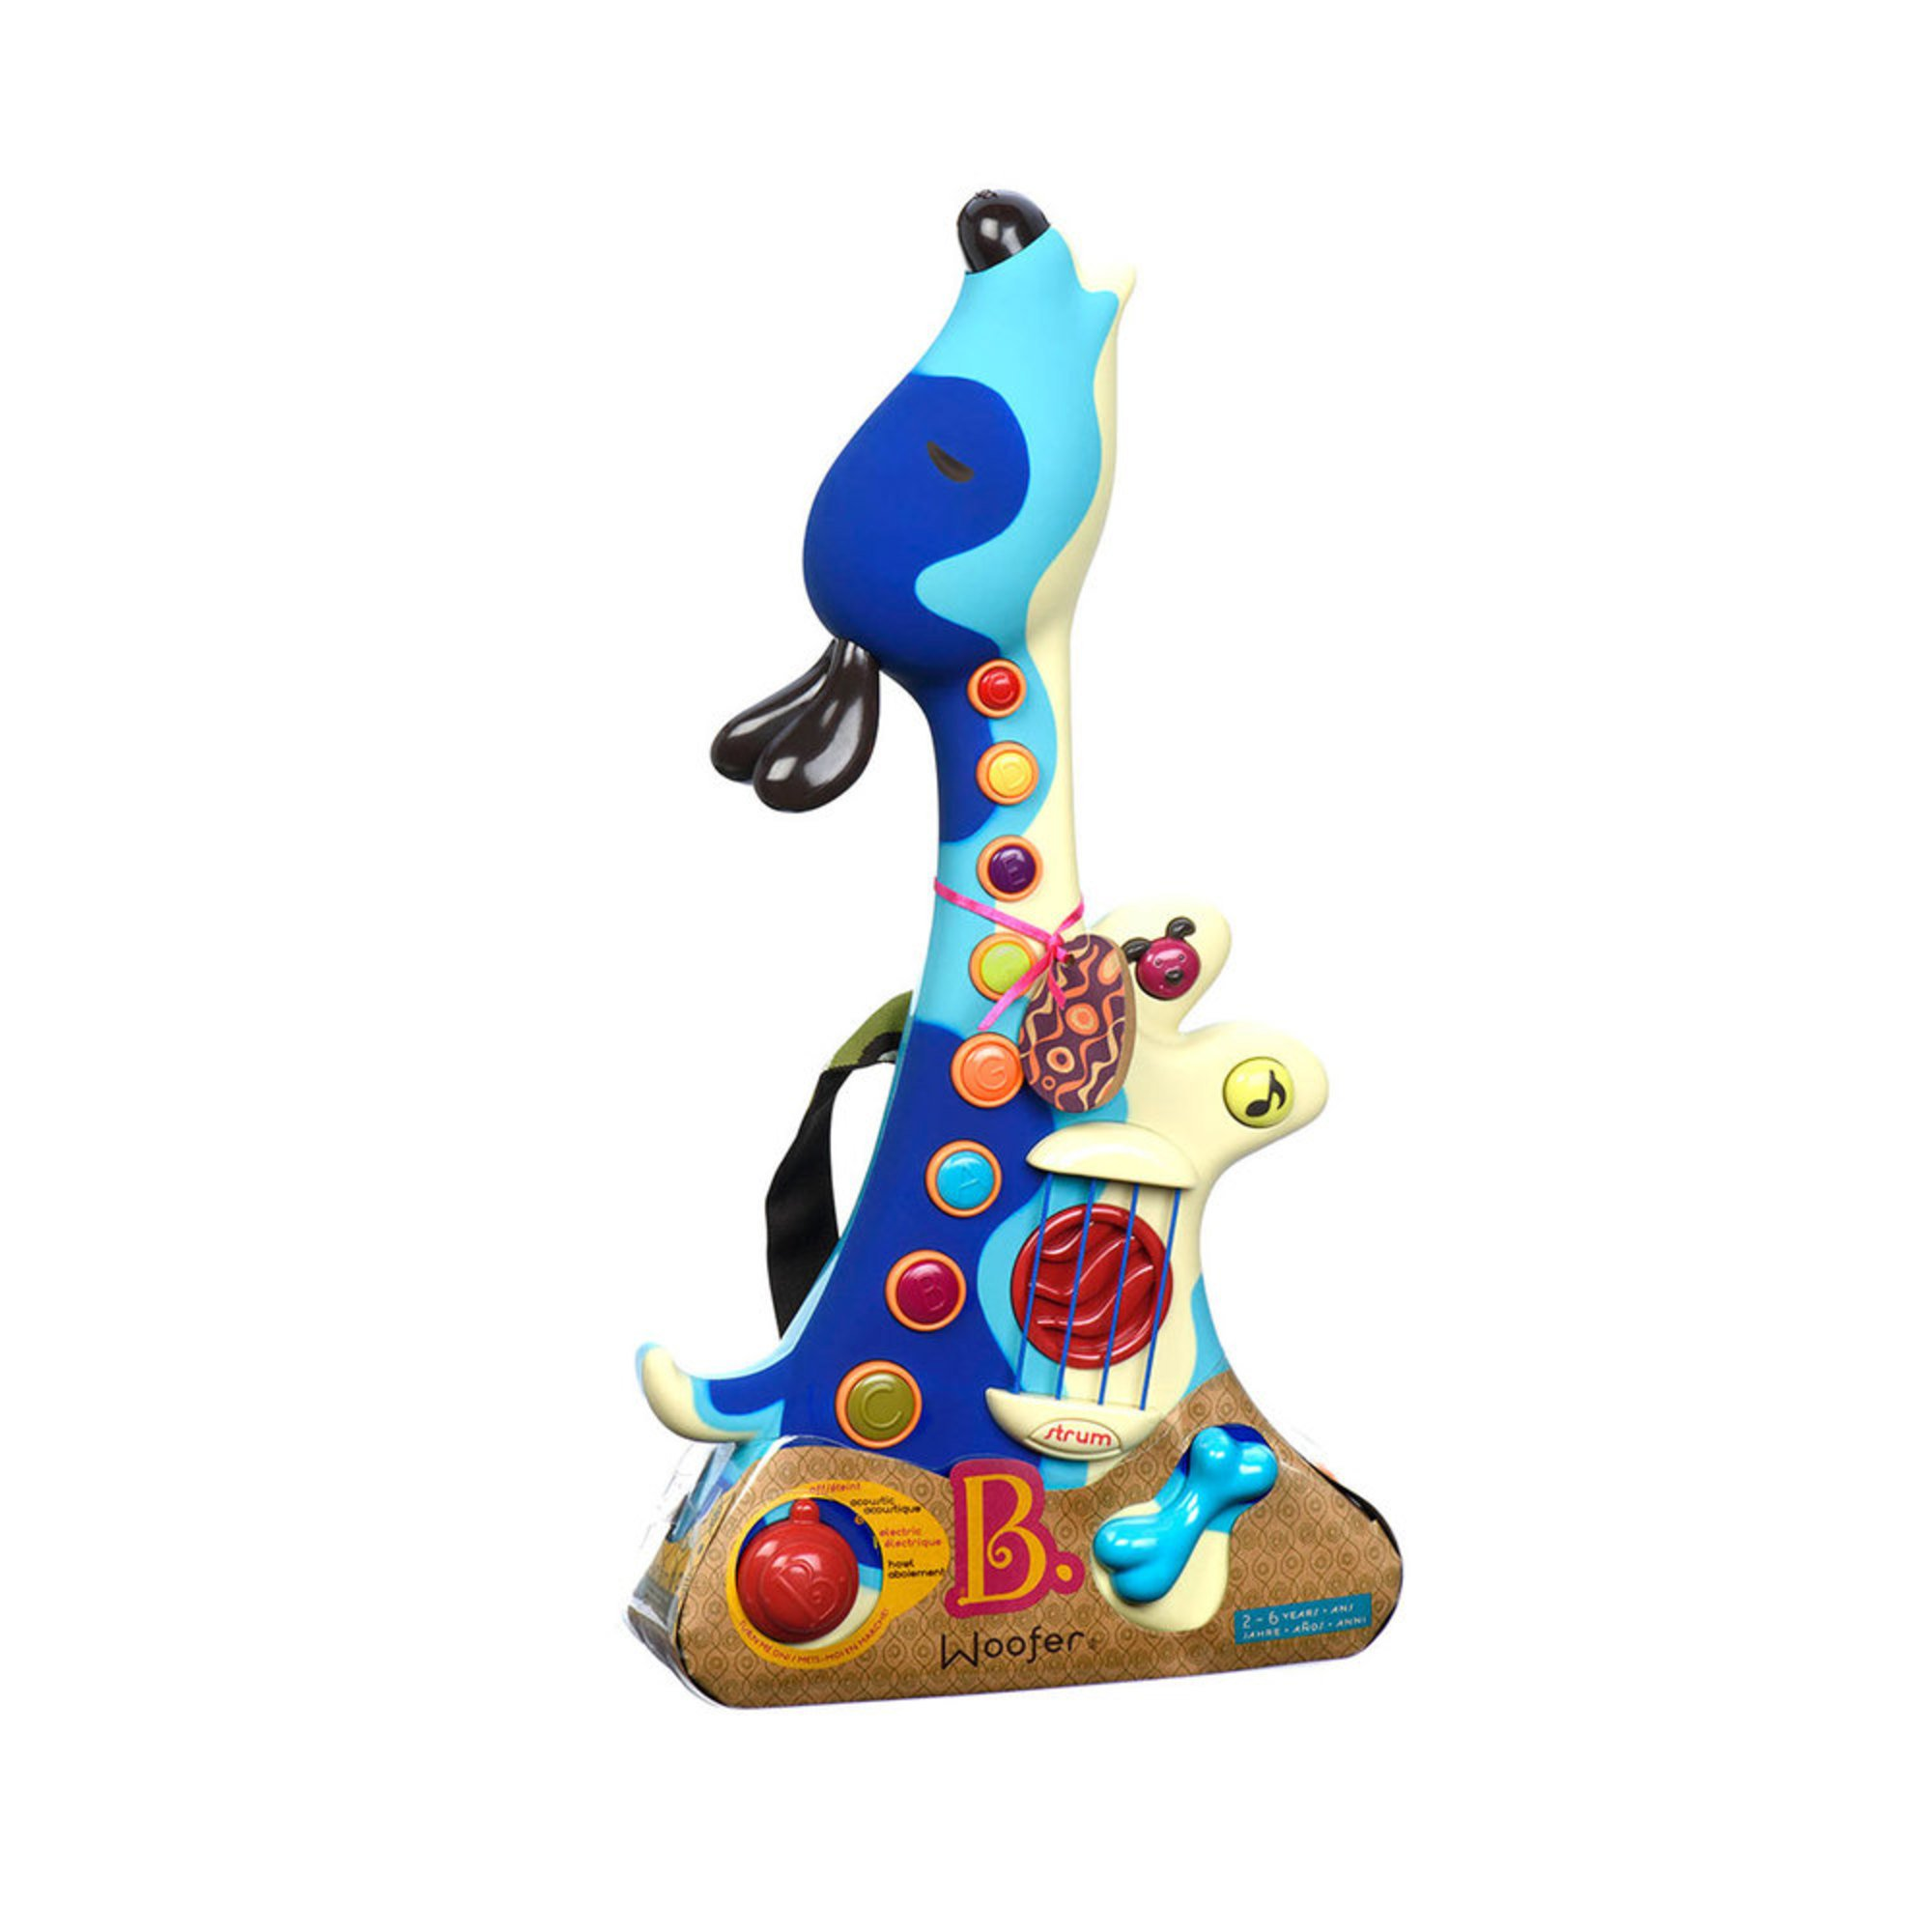 B Toys Woofer Hound Dog Guitar Musical Toys Baby Kids Toys